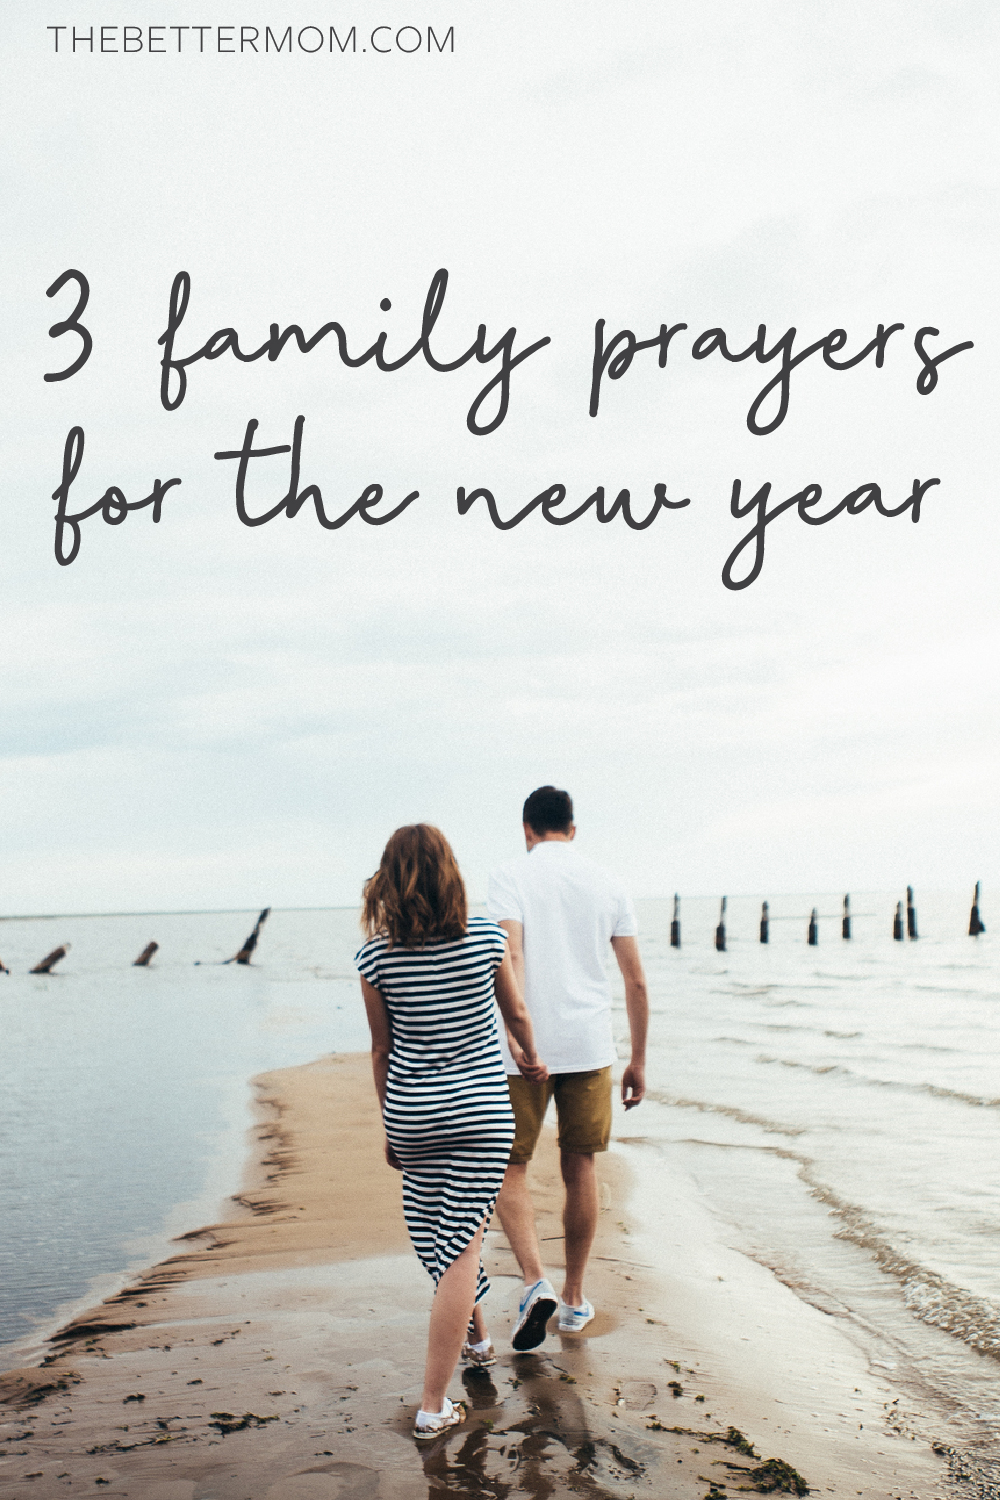 Goals, mission statements, resolutions- these are the buzzwords if January. As wonderful as they all are, perhaps what your family needs this year is God's word breathed fresh, his truth laid out before you. These prayers, taken from scripture are a perfect way to set your pace for 2019 and seek God together...